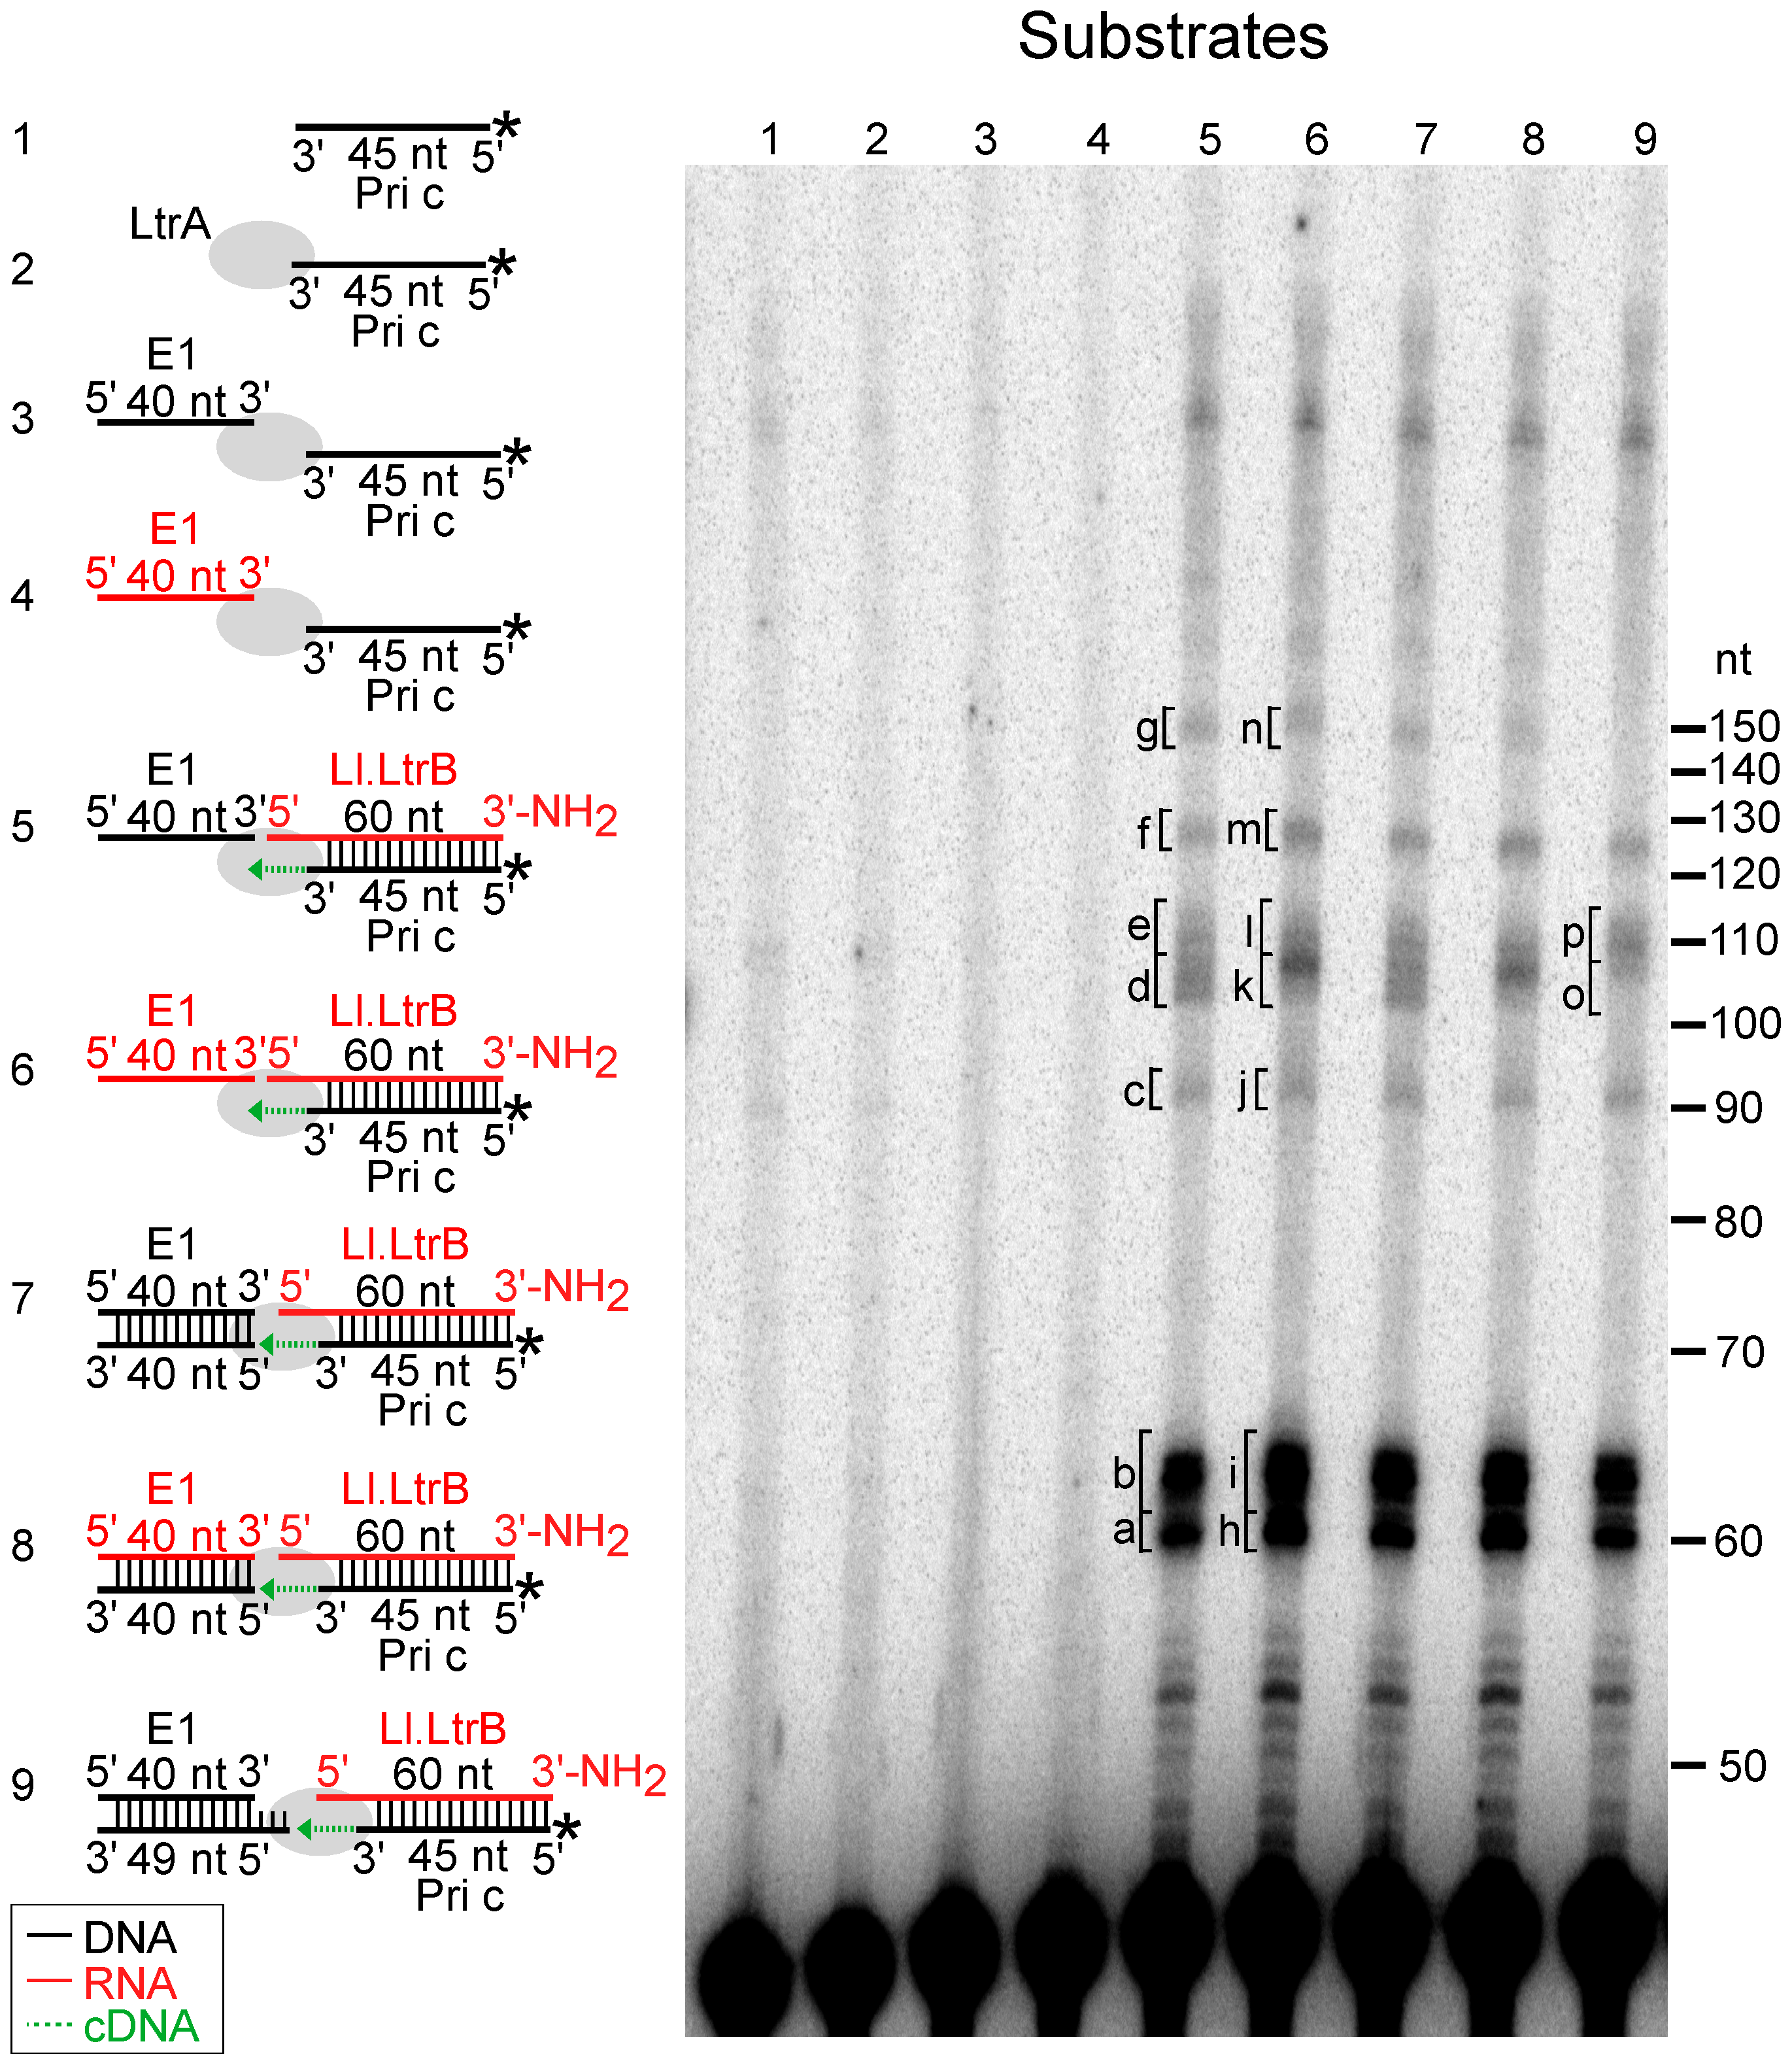 Template switching of LtrA from the 5′ end of the Ll.LtrB intron RNA to exon 1 DNA or RNA.